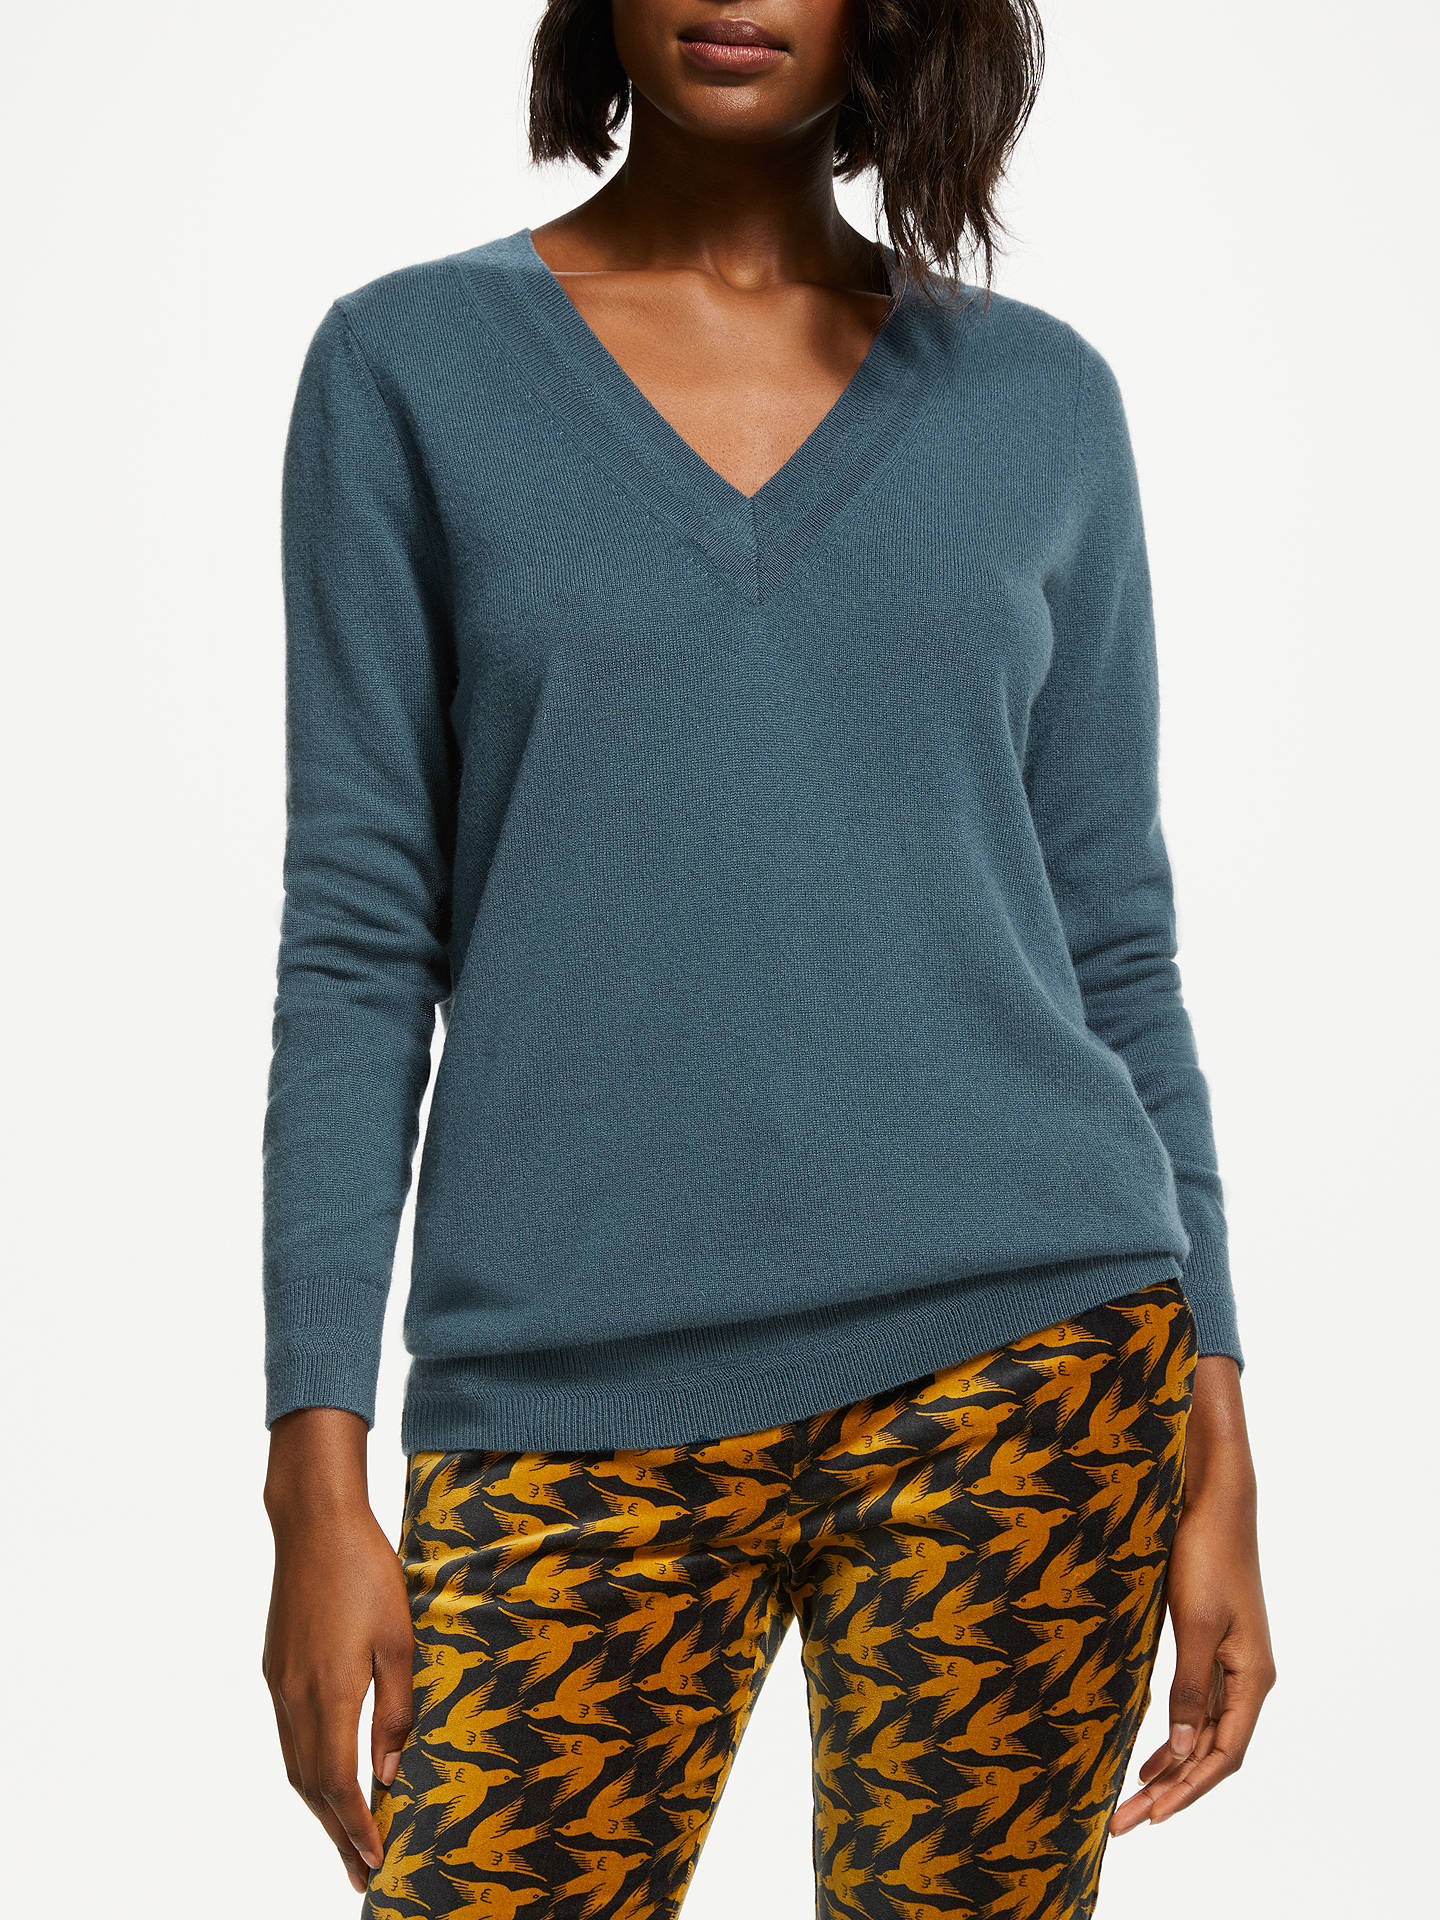 Buy Boden Cashmere V-Neck Jumper, Seaweed, L Online at johnlewis.com